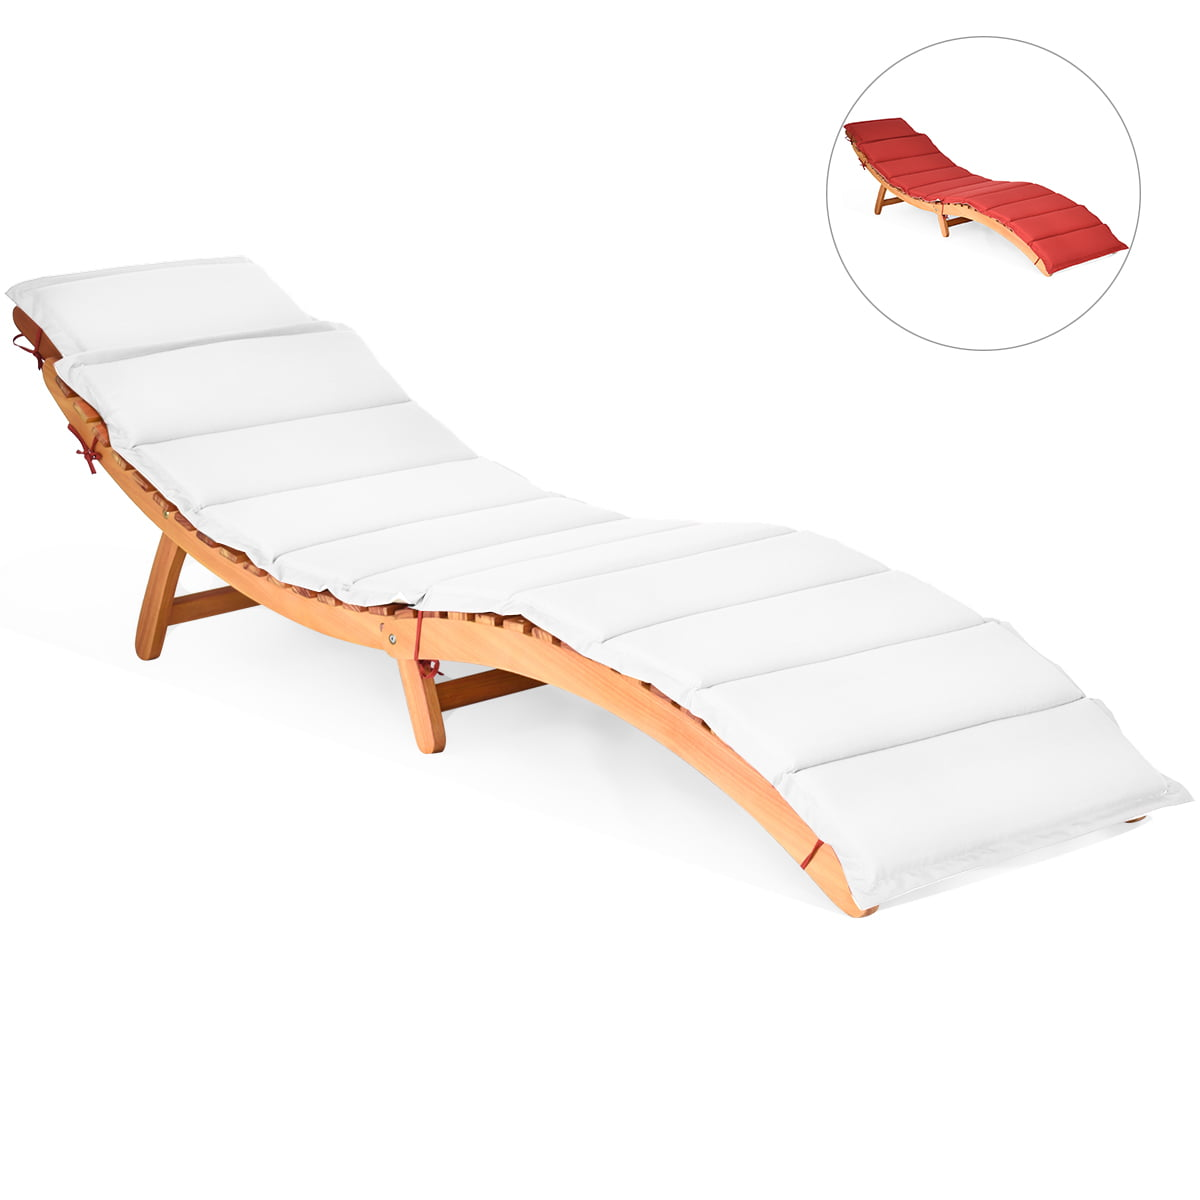 Wooden Outdoor Lounge Chair Chaise Red, White Outdoor Lounge Chair Cushions